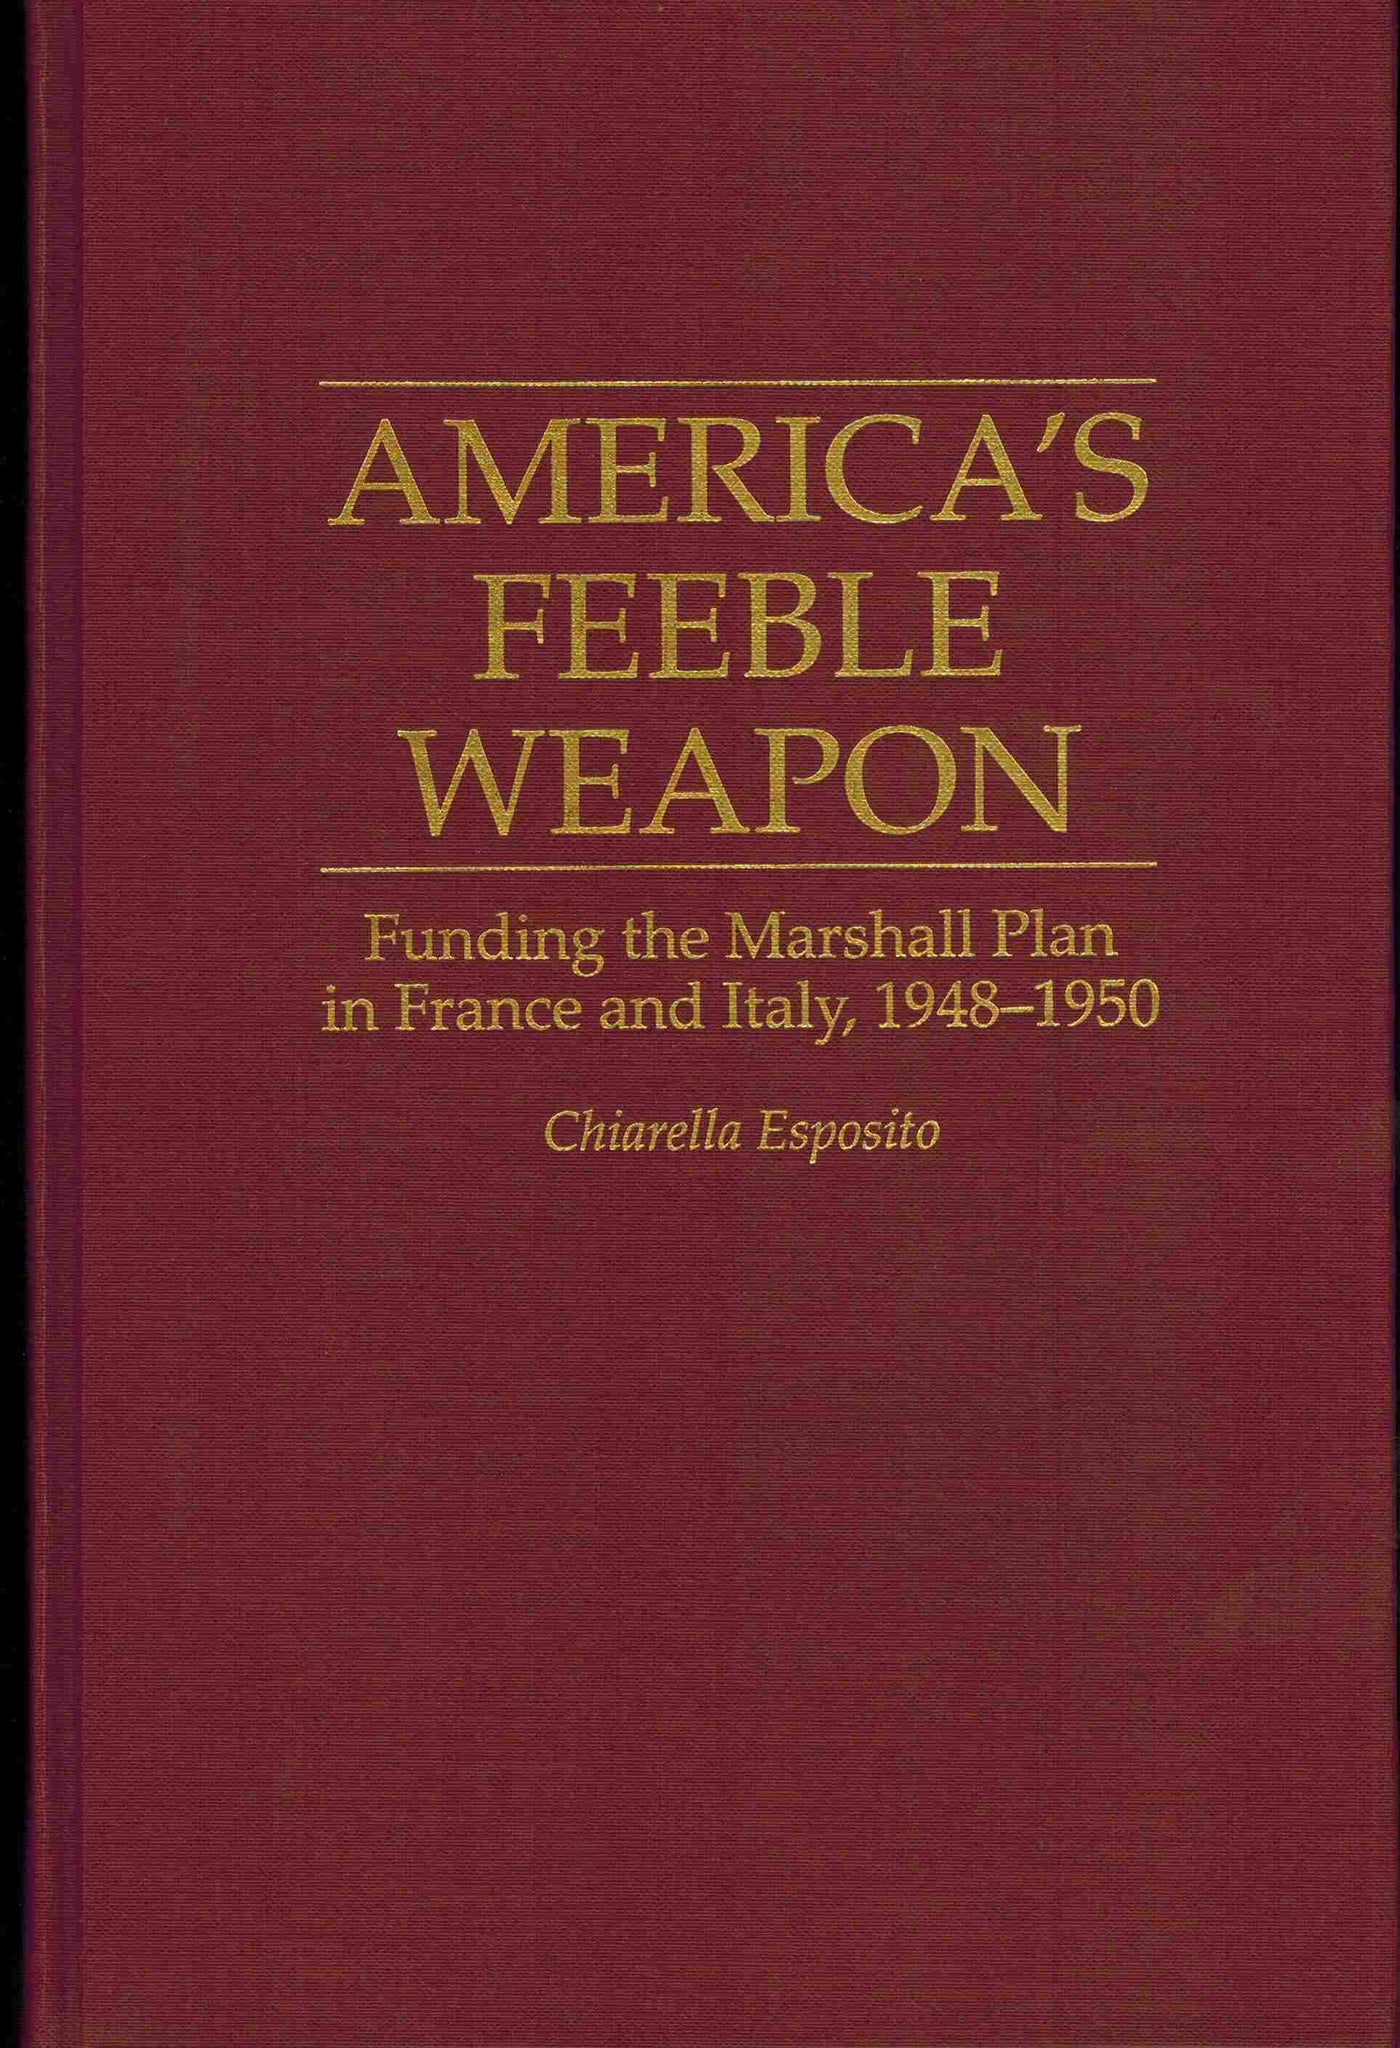 America's Feeble Weapon: Funding the Marshall Plan in France and Italy,  1948-1950 - books-new